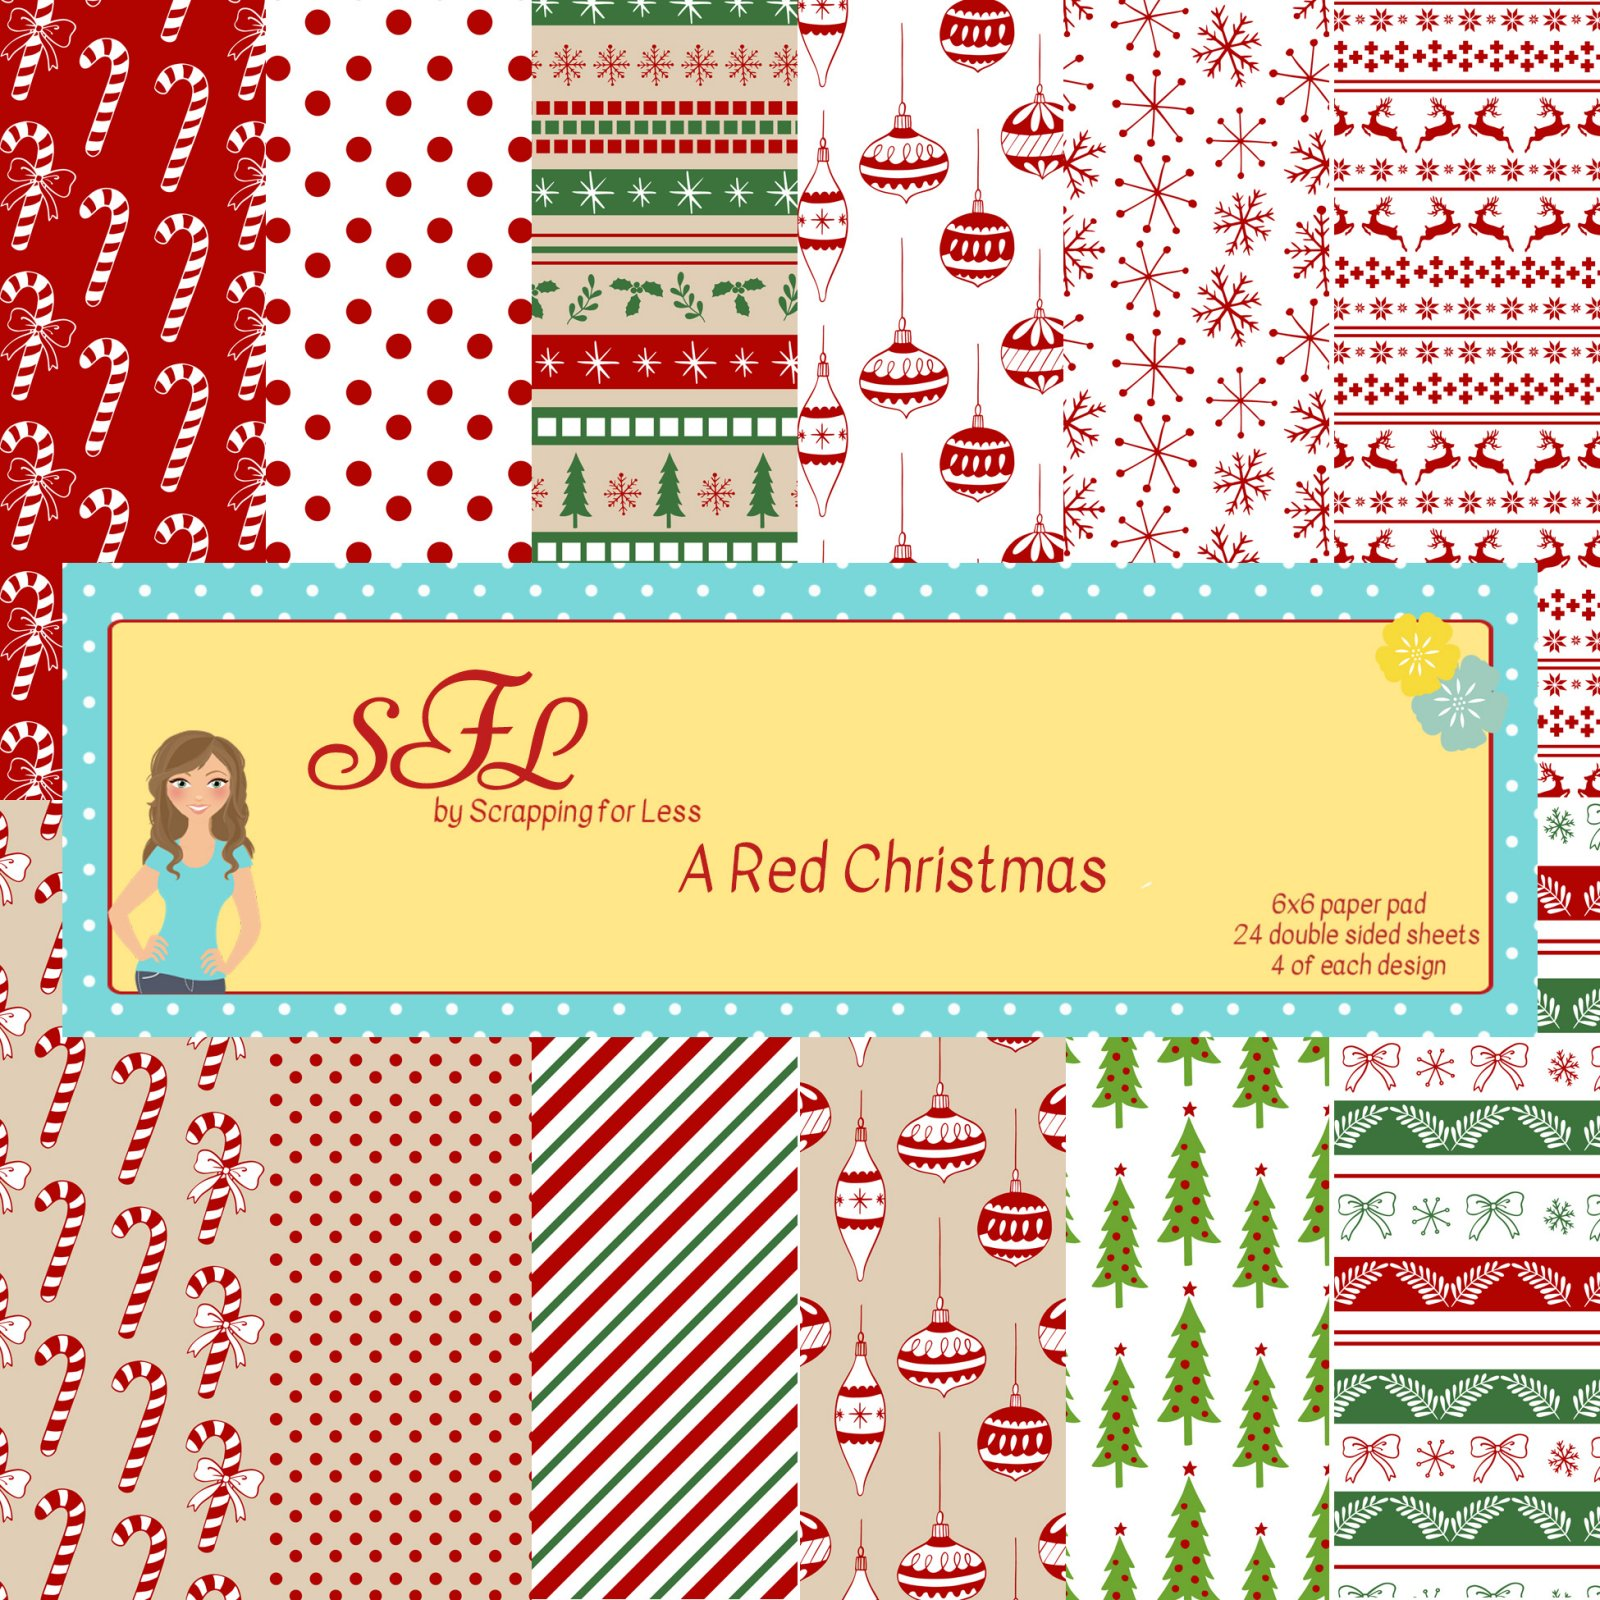 SFL A Red Christmas 6x6 Paper Pad